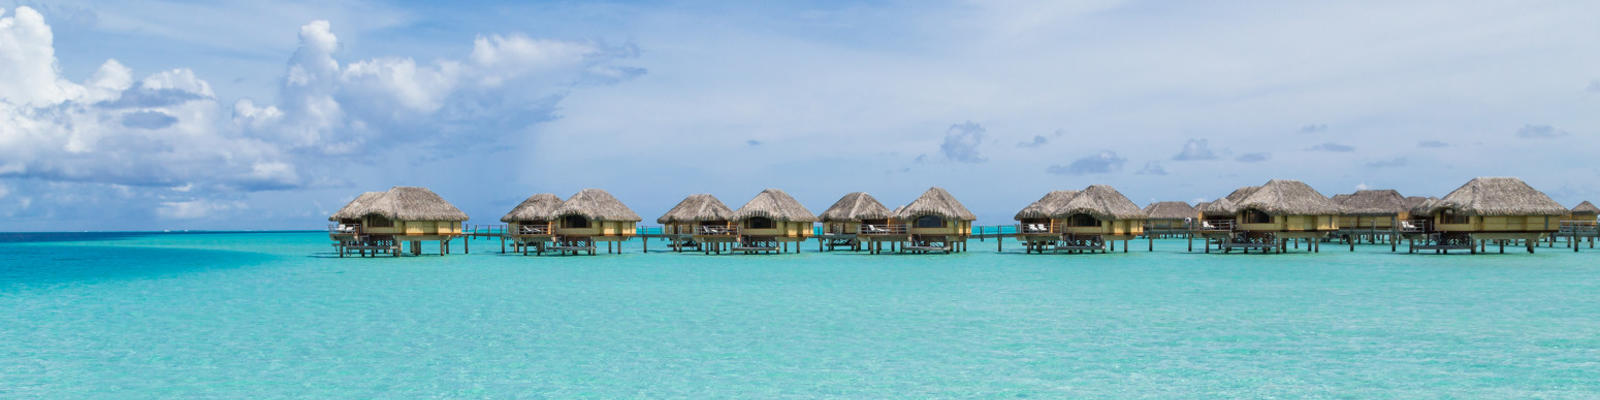 A distant shot of luxury overwater bungalows over the blue waters of Bora Bora